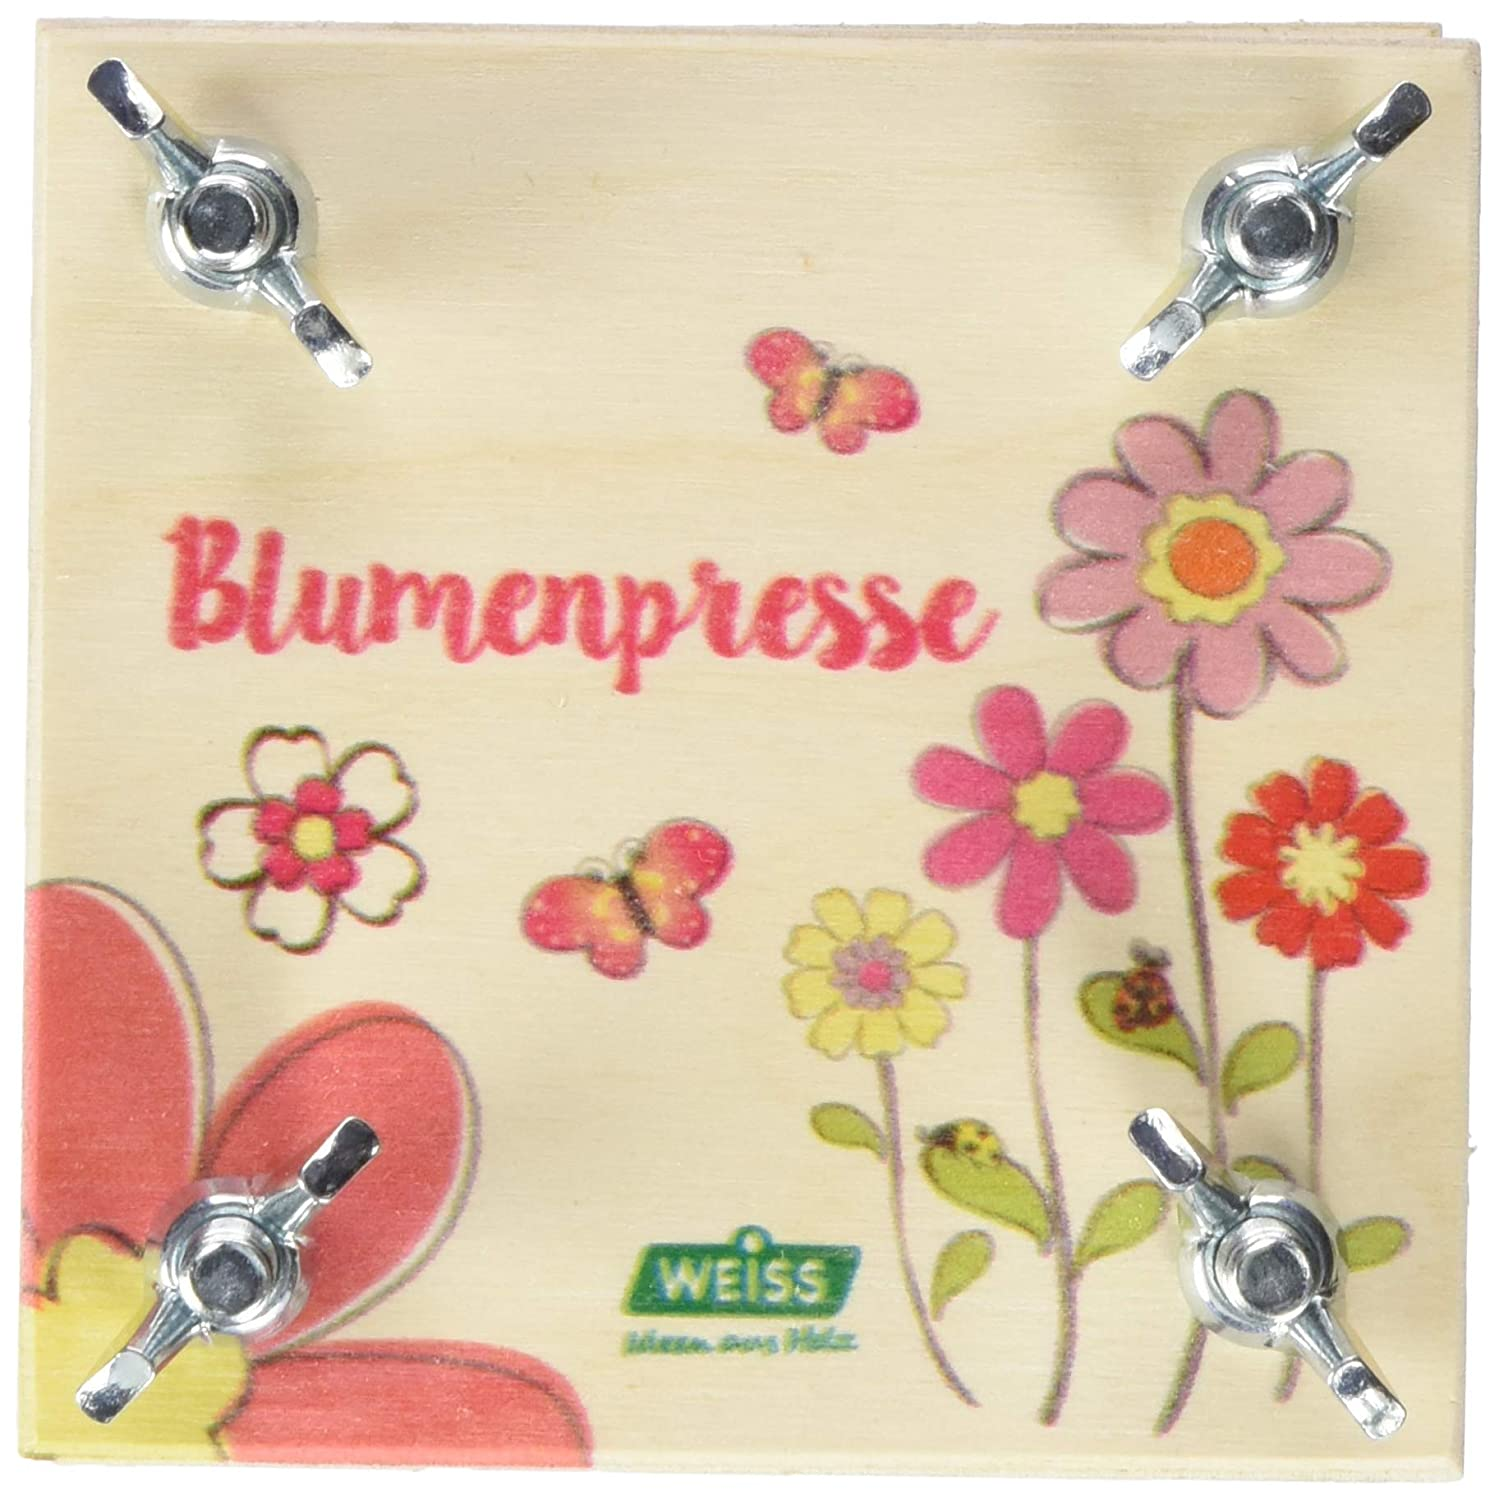 Weiss Natur Pur Weiss Natur PurB09710 Small Colourful Flower Press